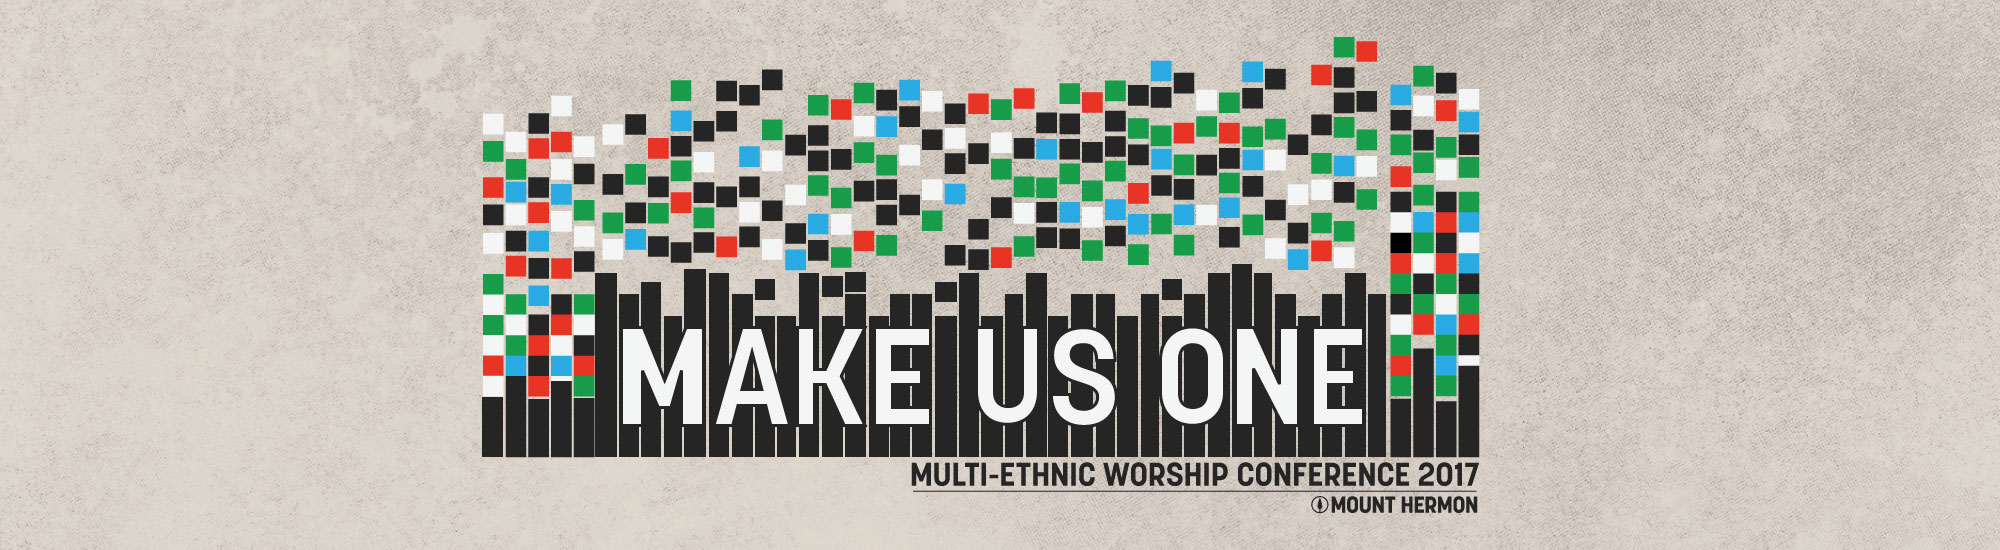 """Make Us One"" logo"